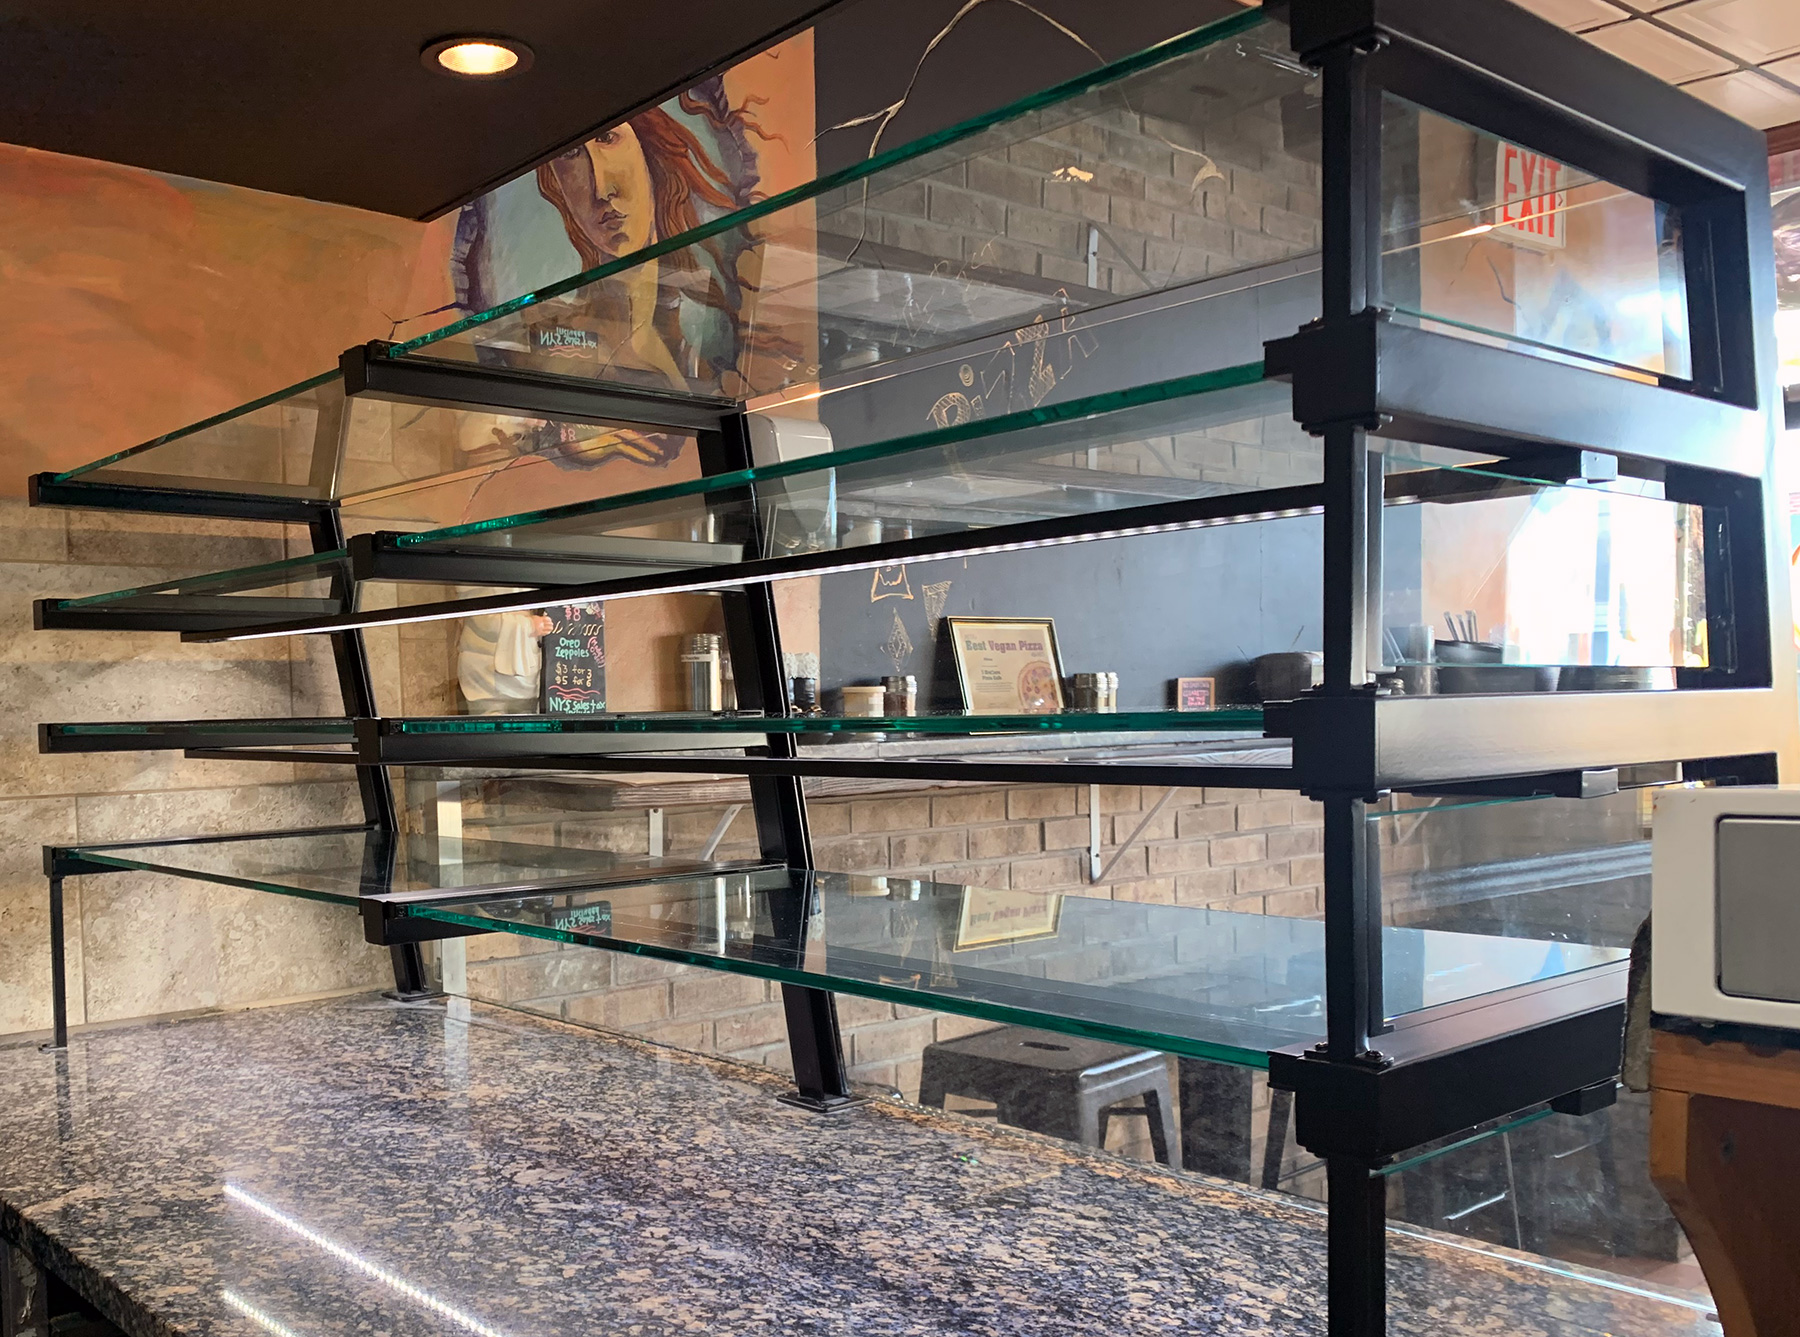 4-Tier Power-coated Matte Black Food Shields with LED lights | 3 Brothers Pizza, Rockville Centre, NY